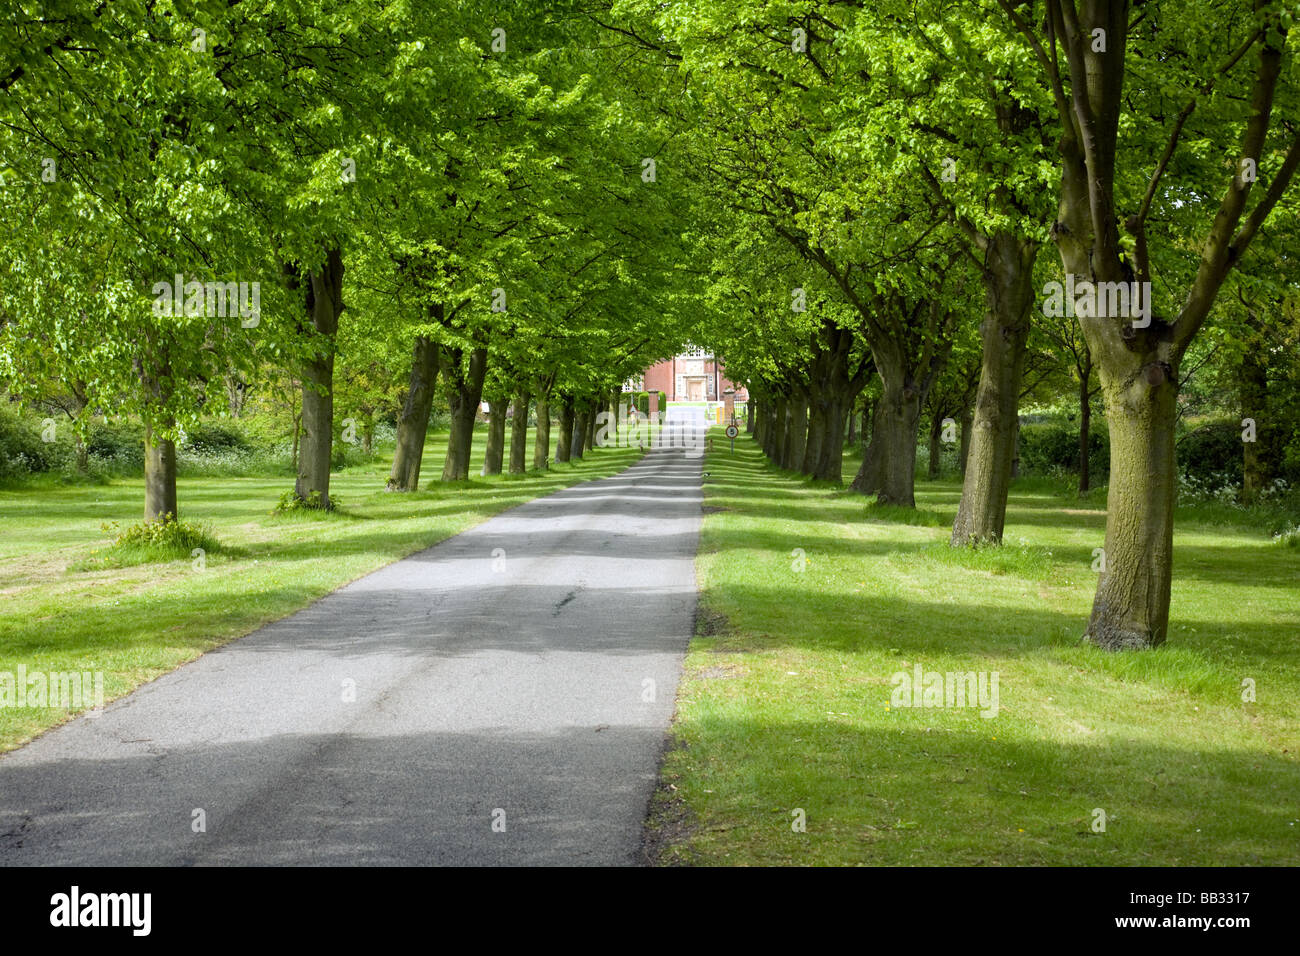 The tree-lined driveway to New Hall private girls school, Chelmsford, Essex, England - Stock Image